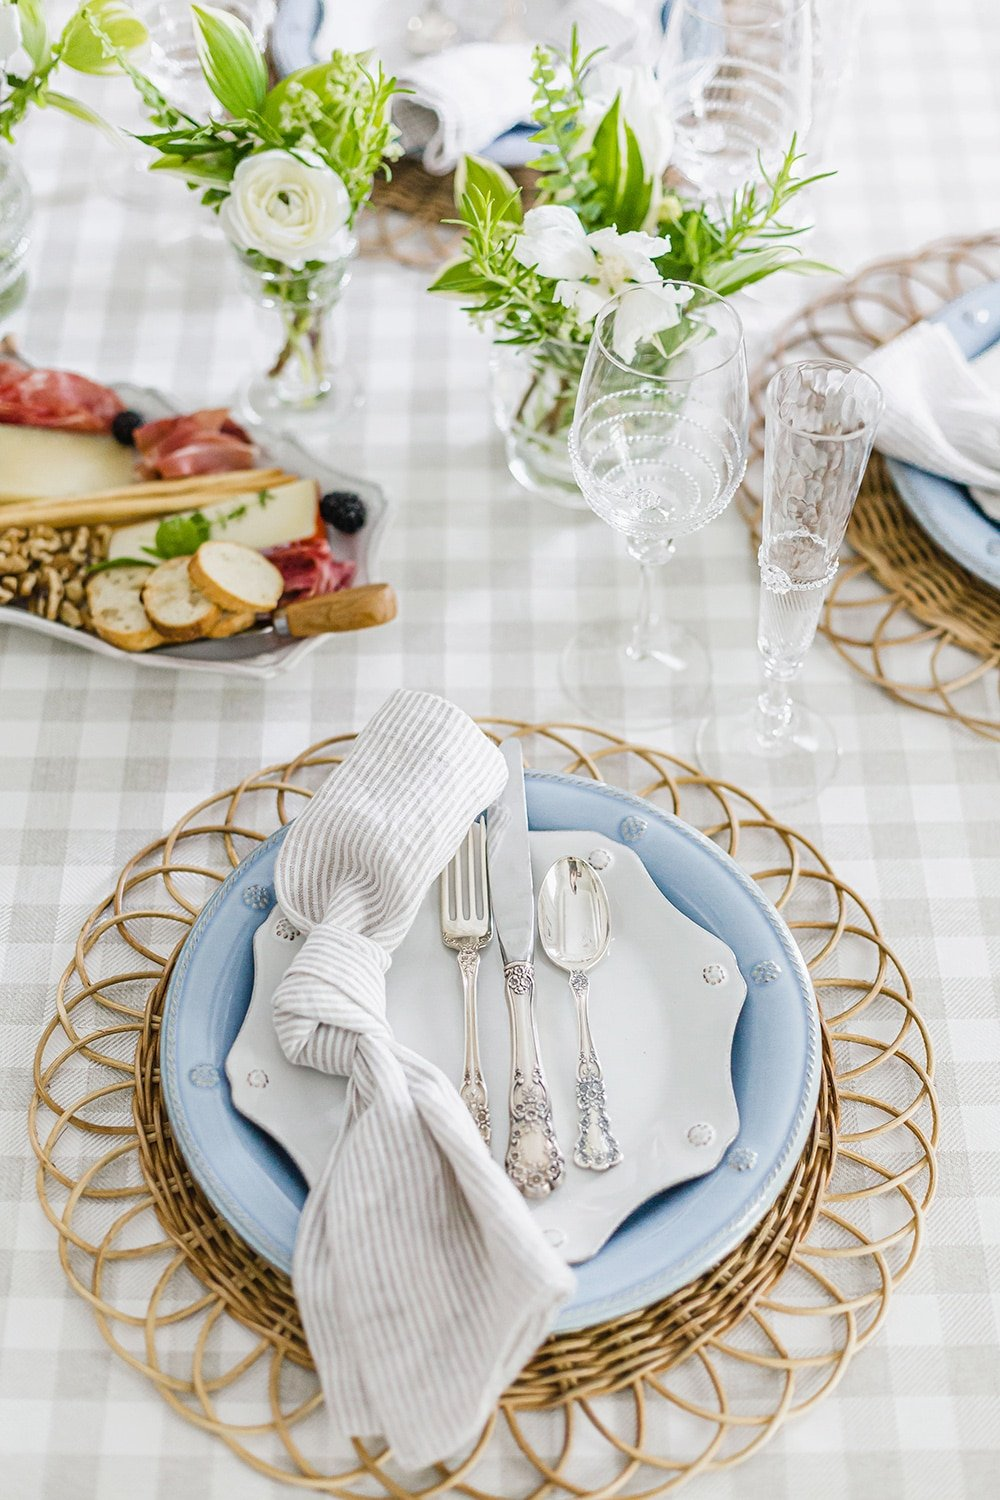 Charming Summer Tablescape